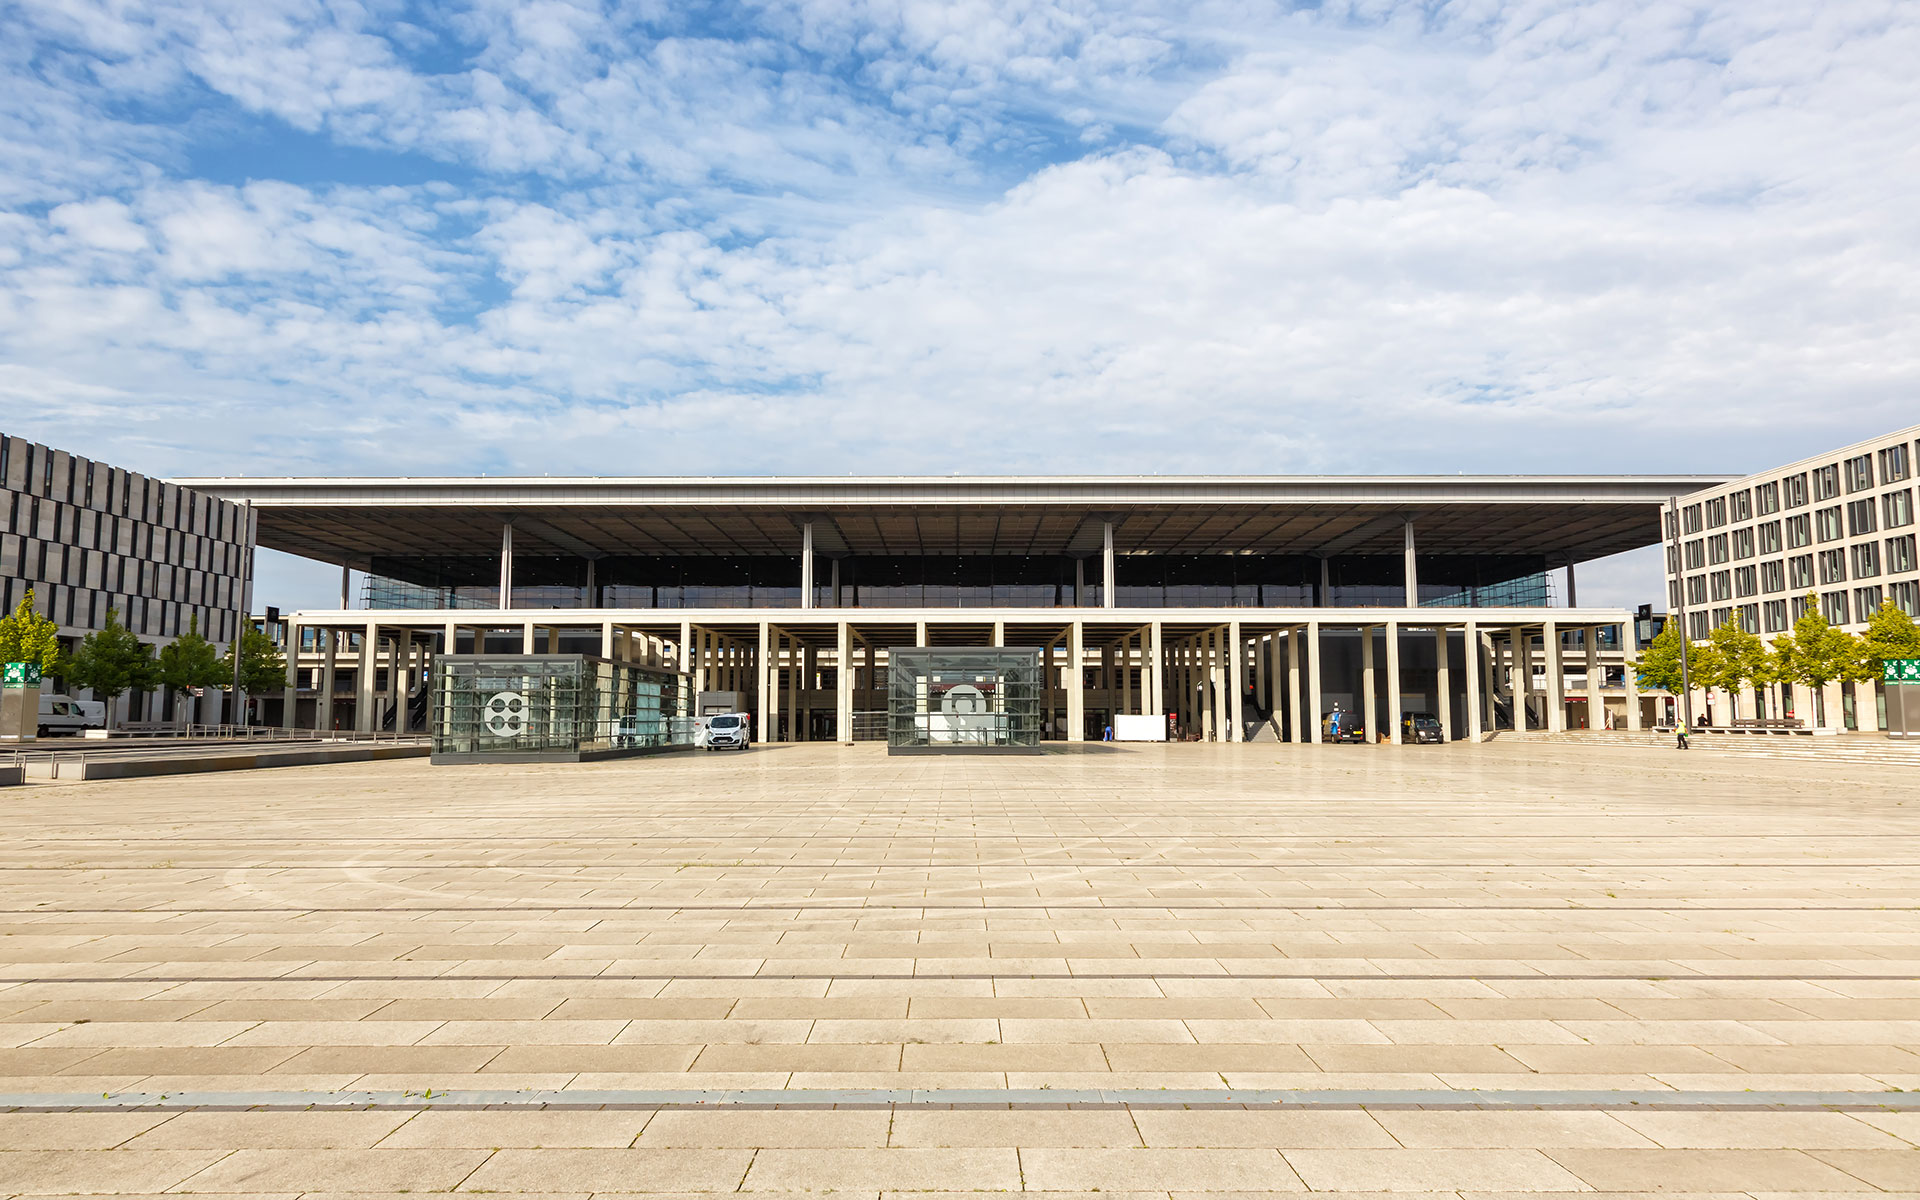 Terminal 1-2 of the new Berlin Airport BER (photo © Boarding1now / dreamstime.com).